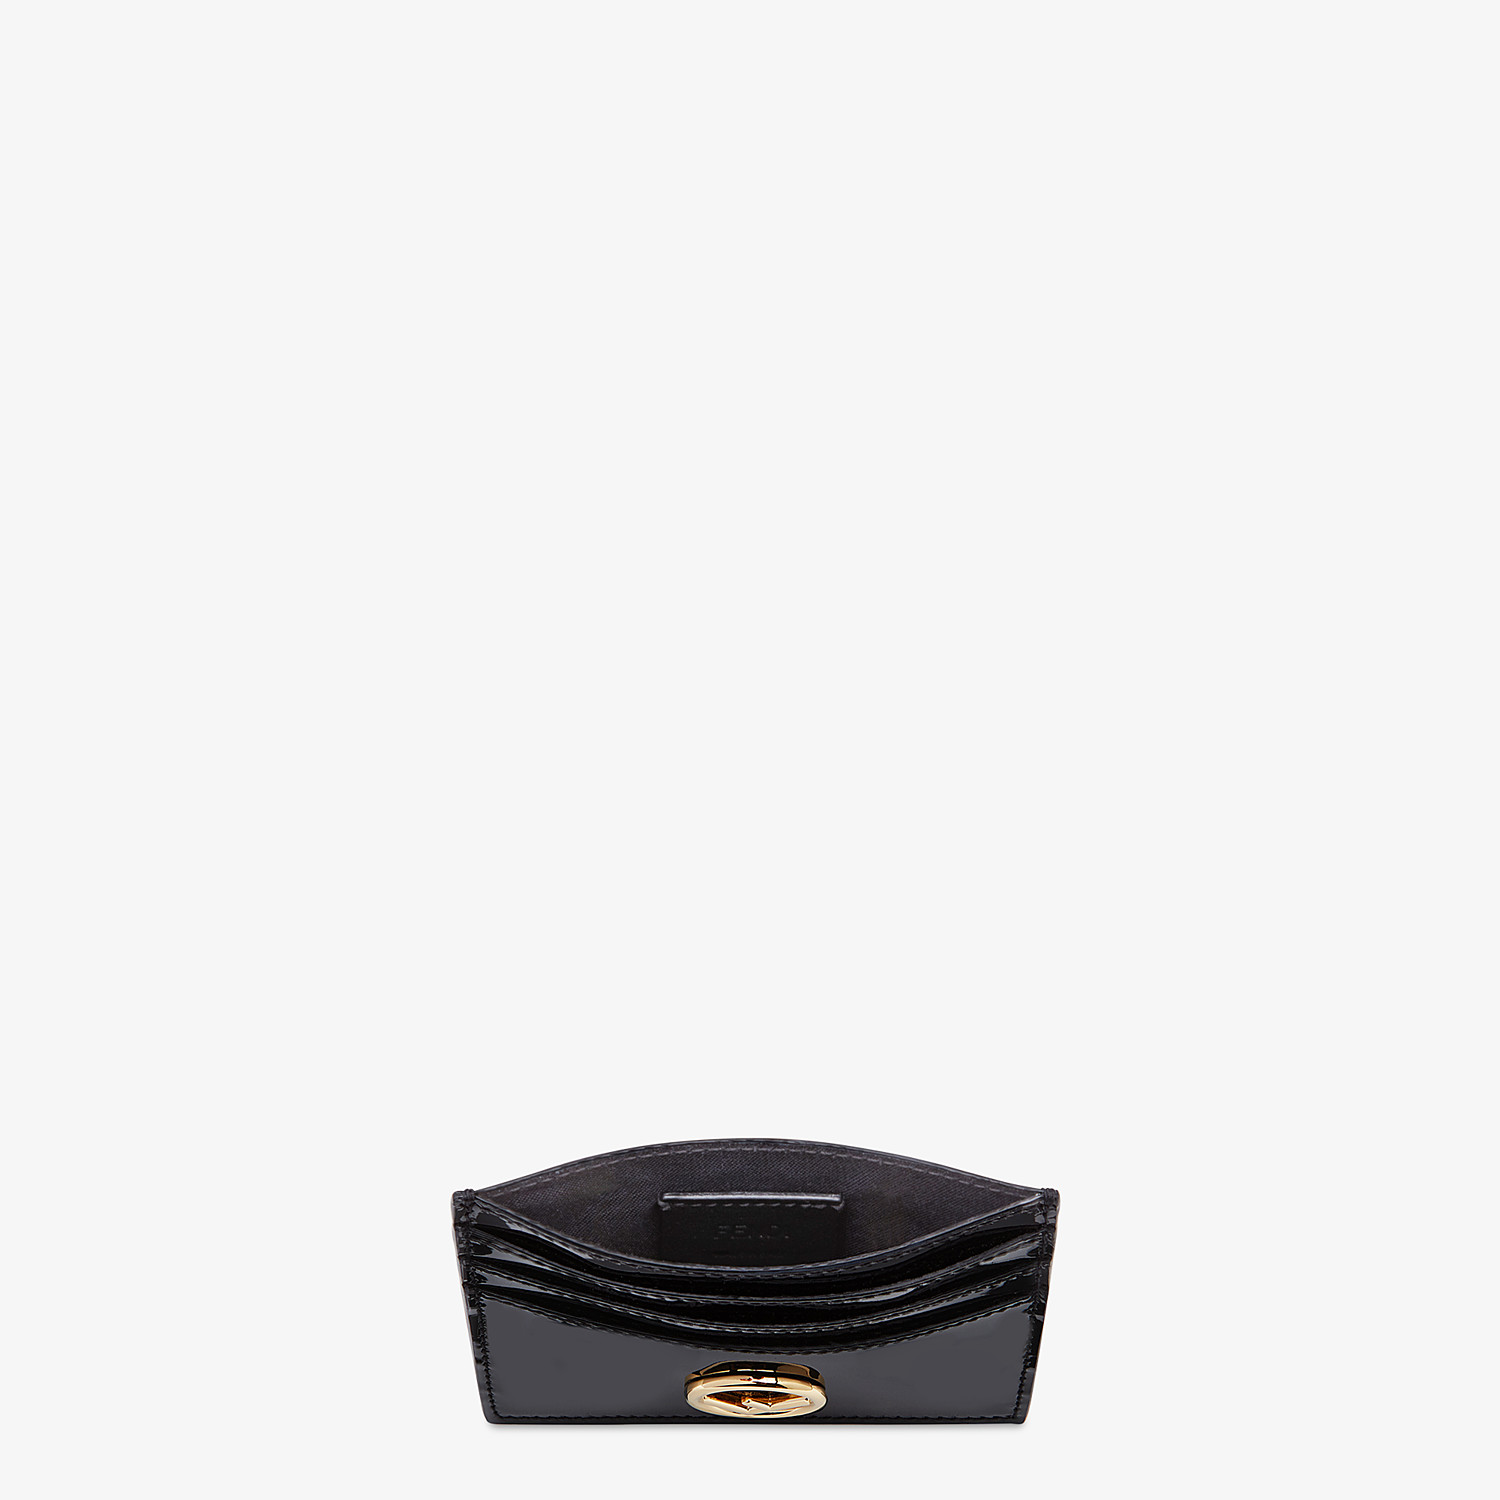 FENDI CARD HOLDER - Flat card holder in black patent leather - view 3 detail